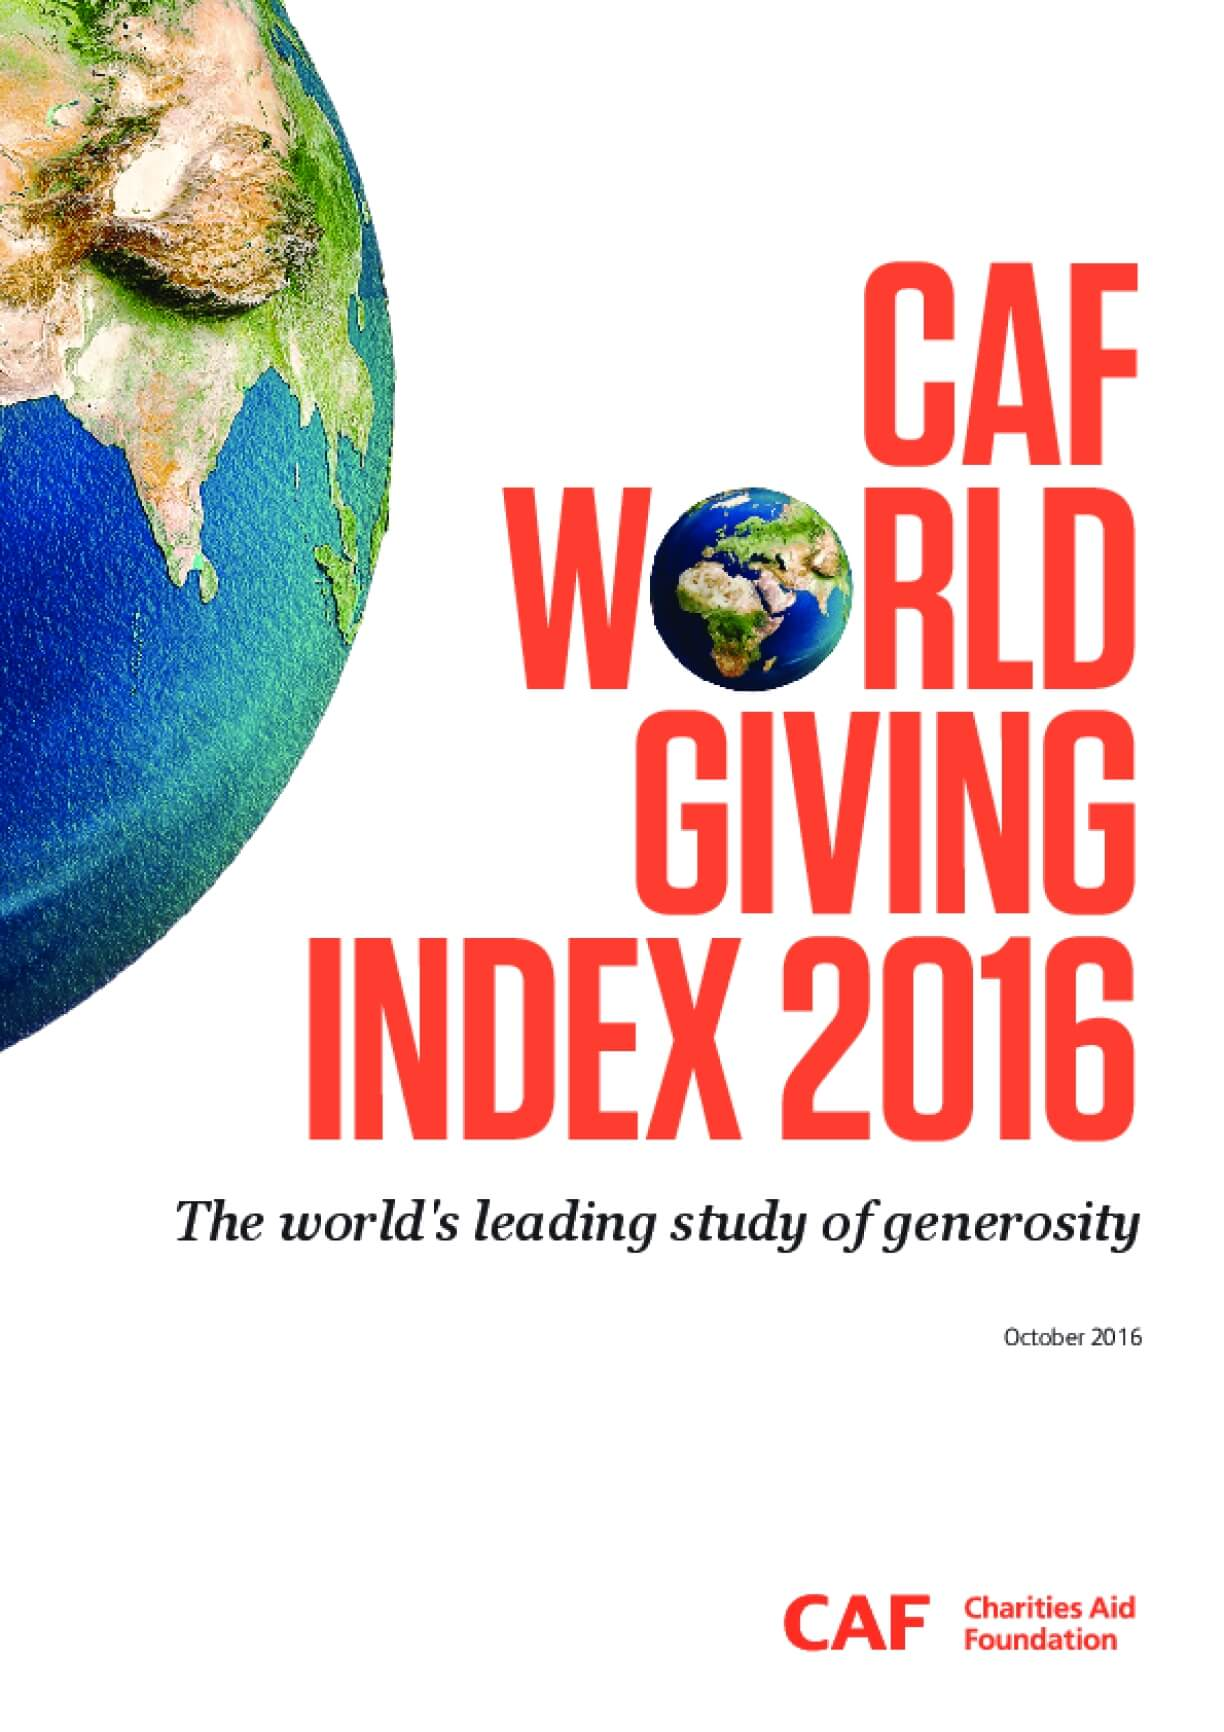 CAF World Giving Index 2016